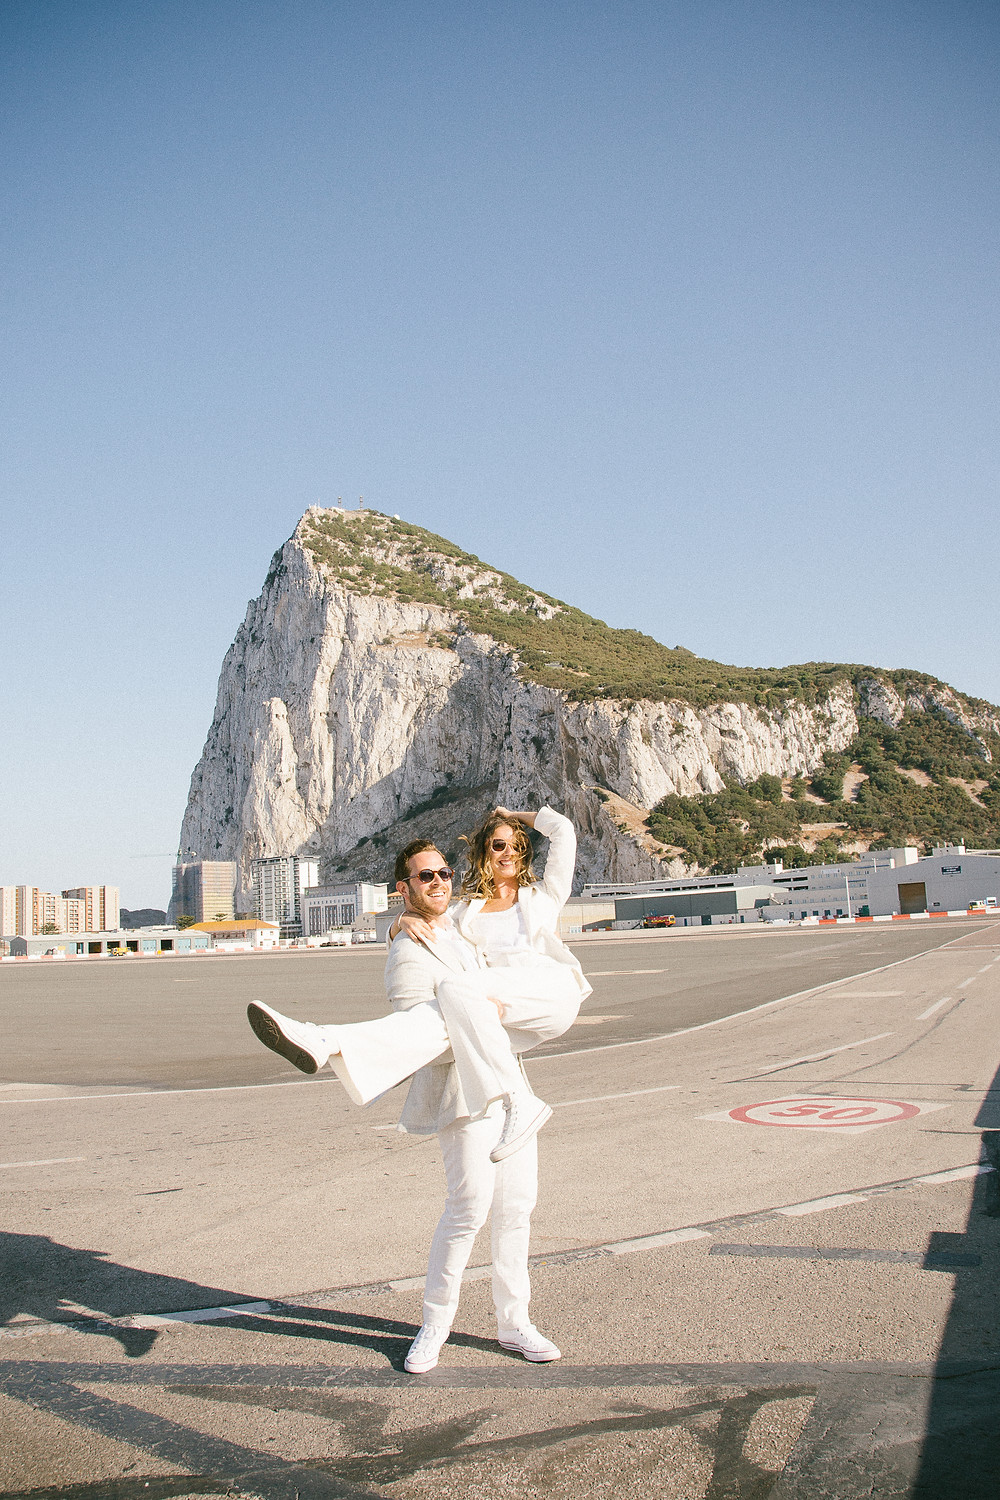 John and Yoko style wedding in Gibraltar. Gibraltar Registry office.